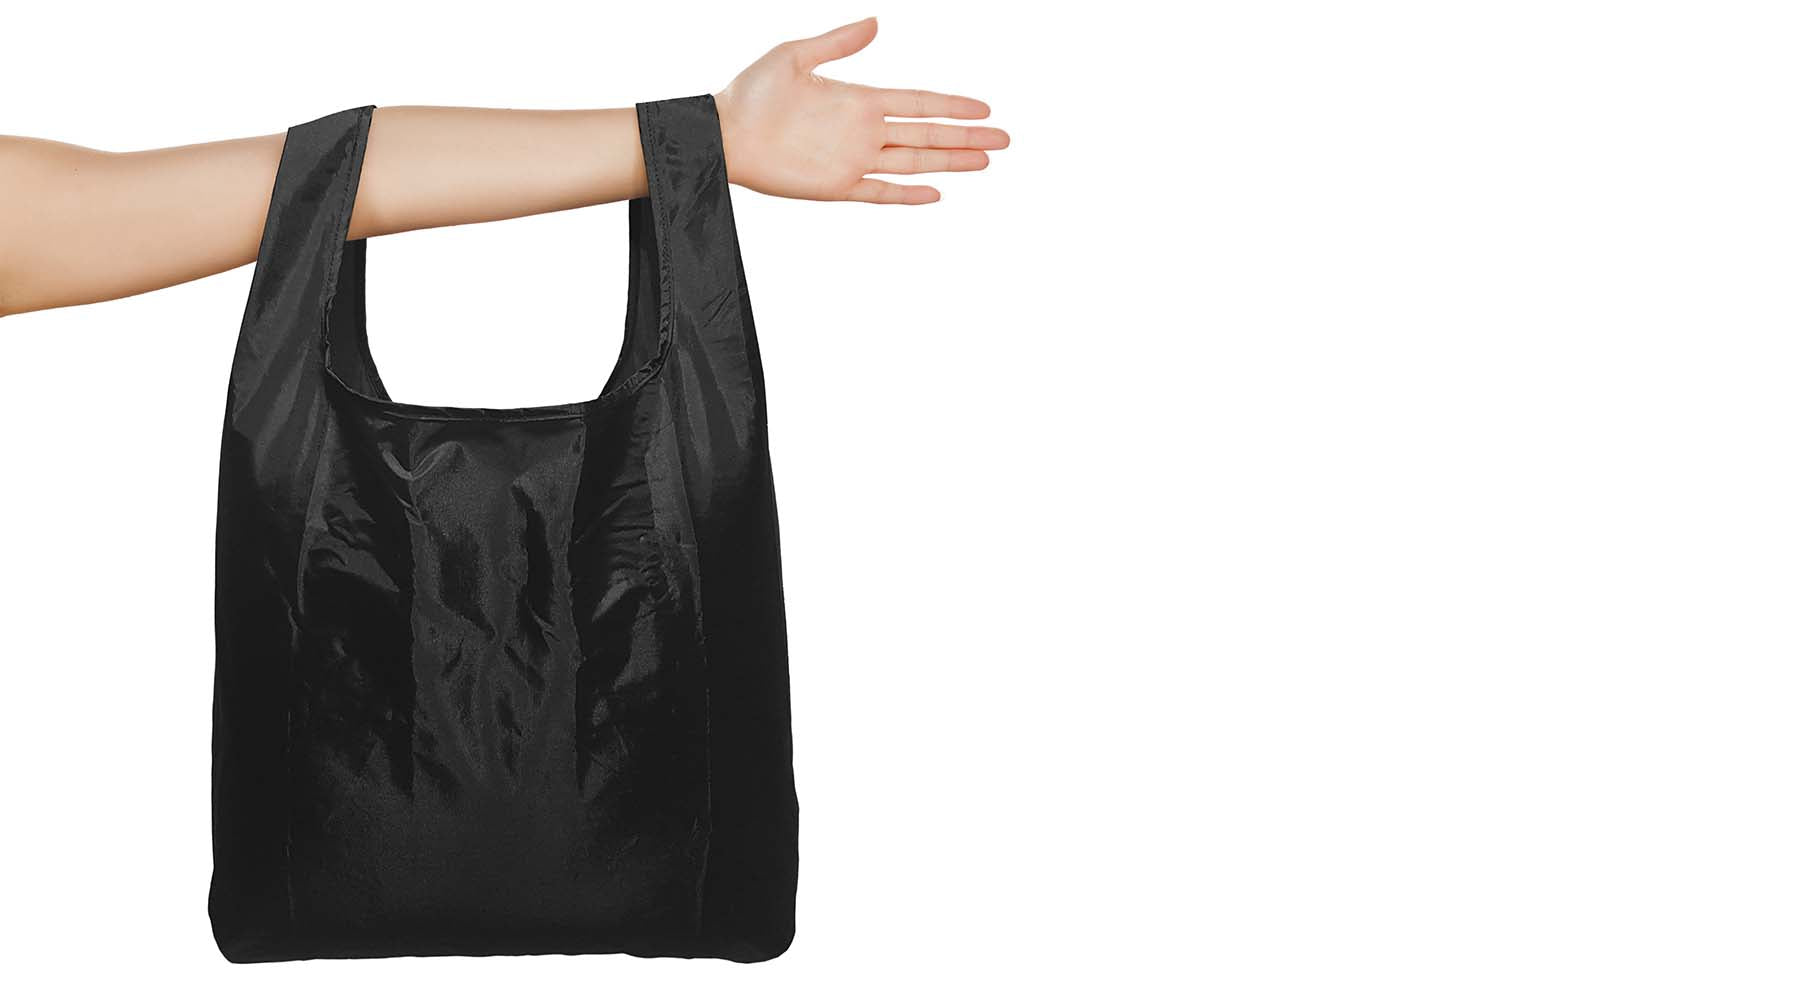 Black re-usable eco shopping bag by Pikkii Design